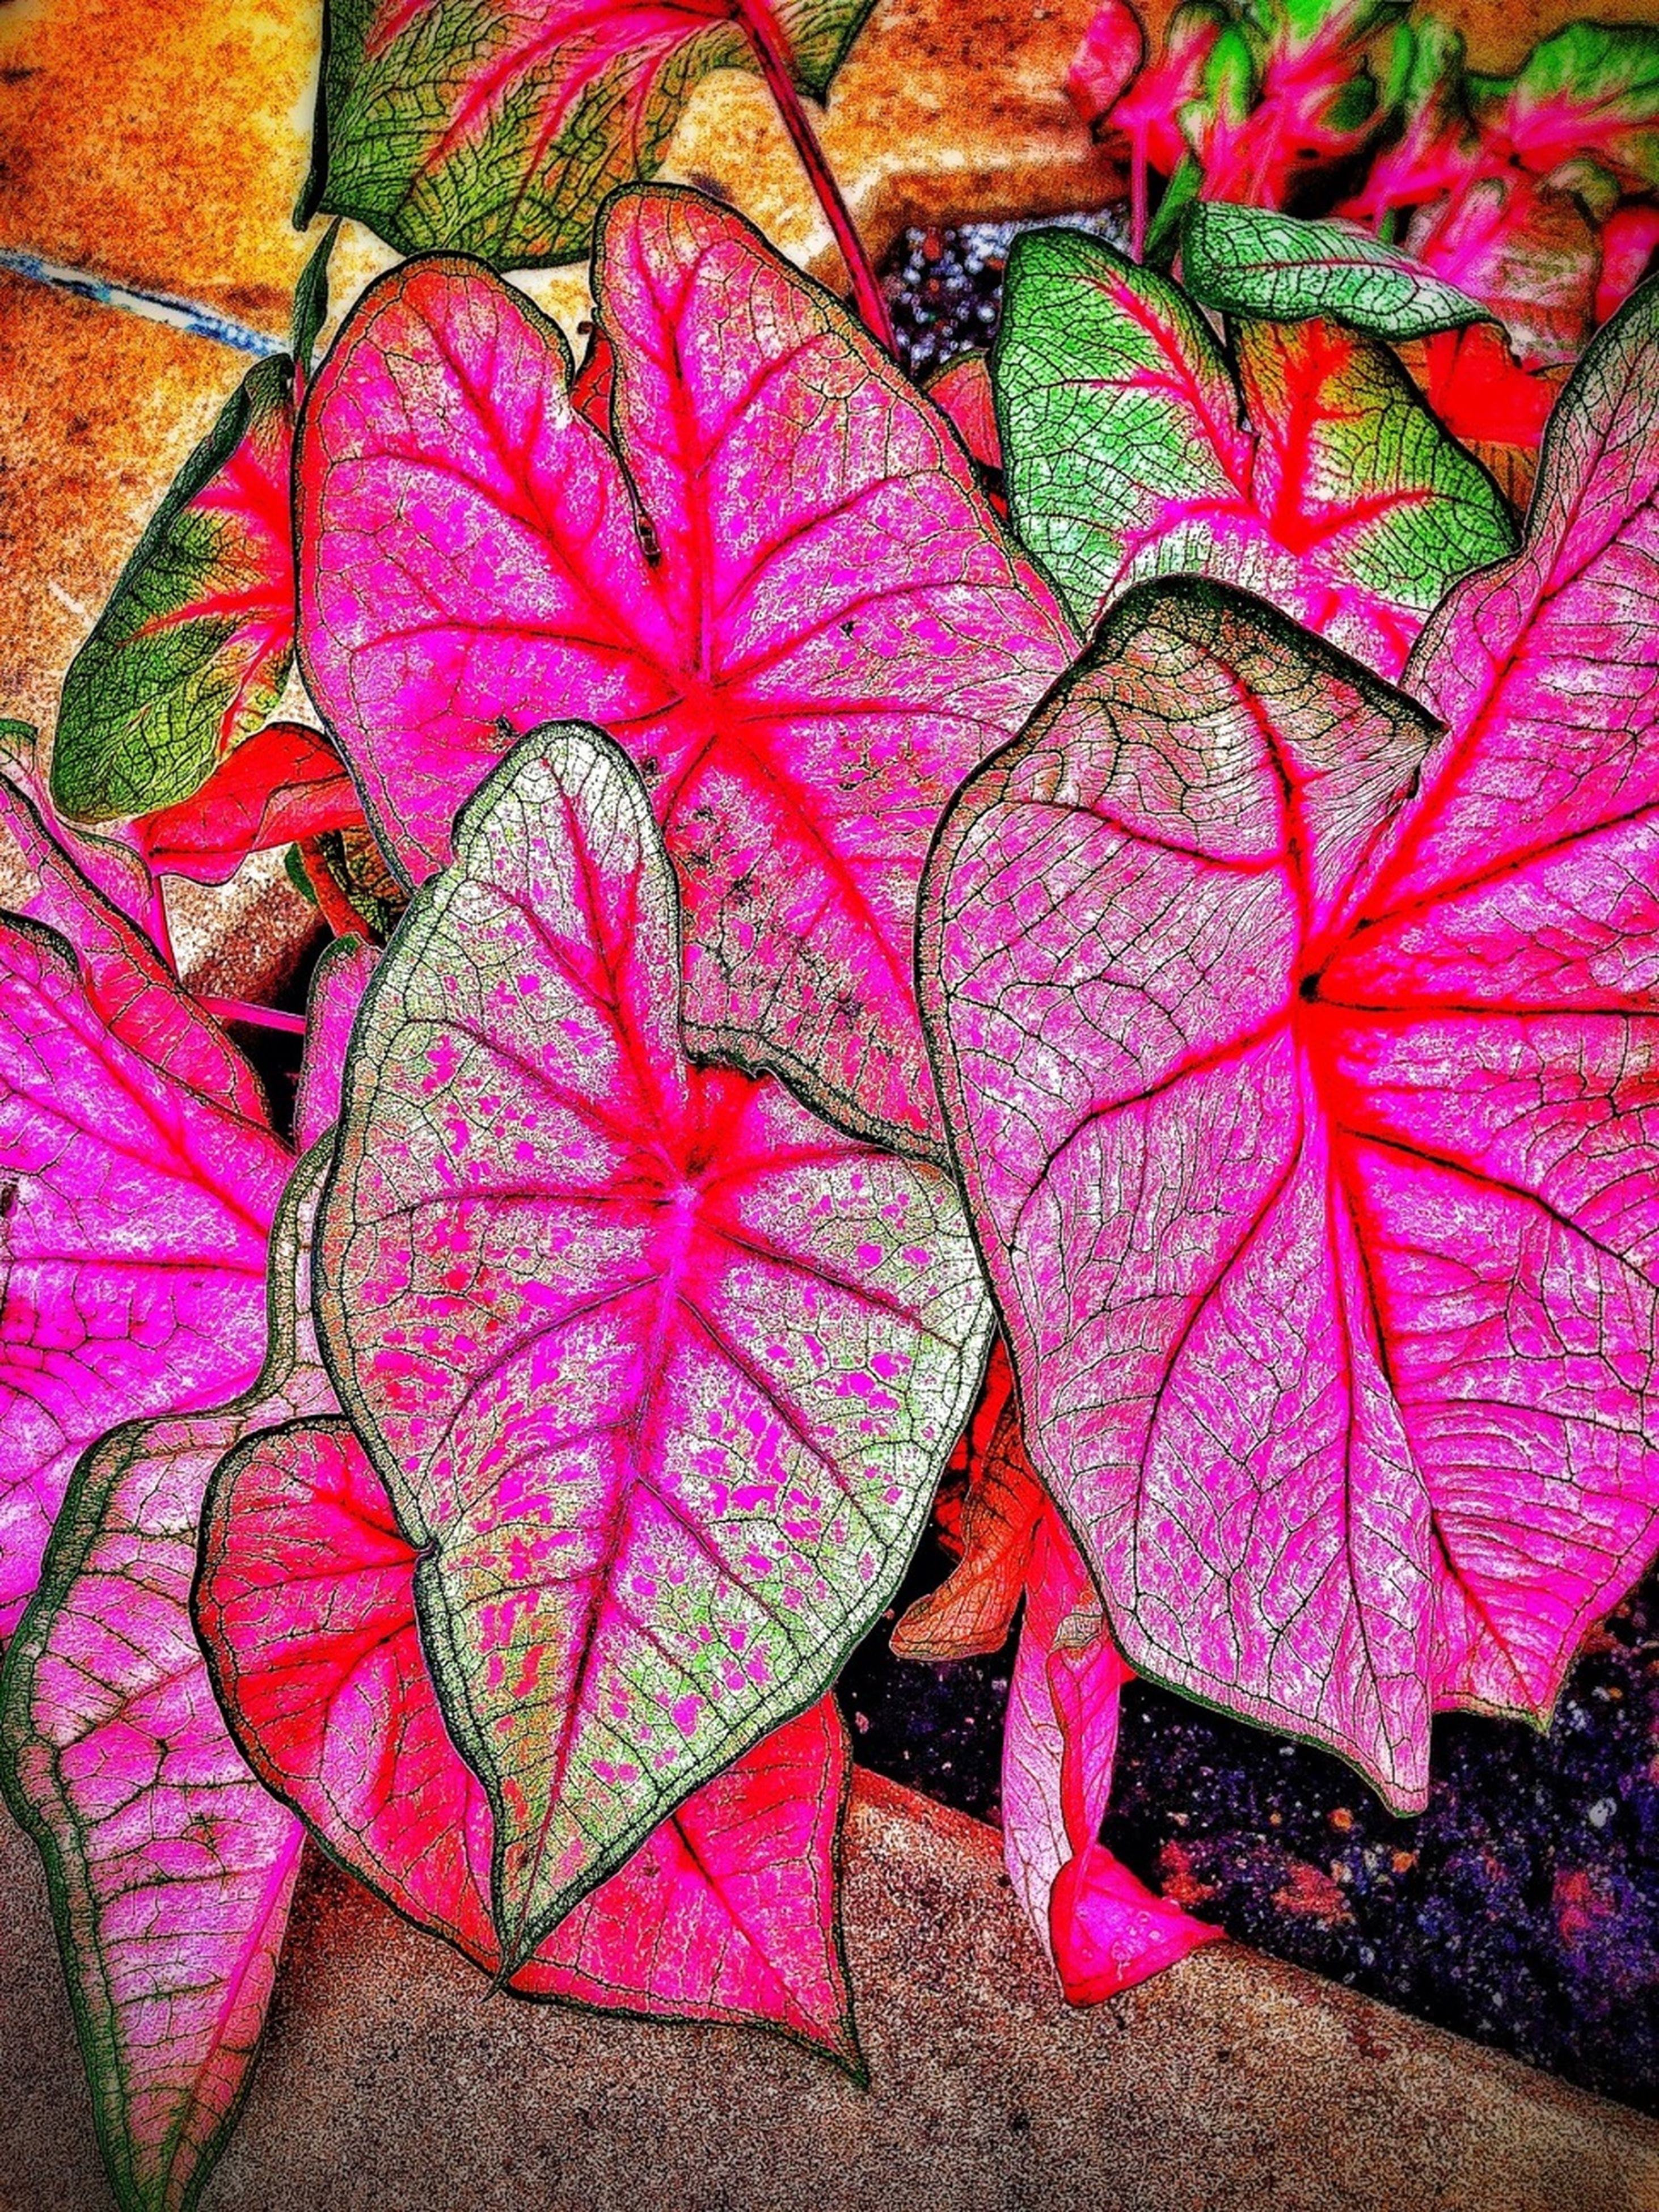 full frame, leaf, backgrounds, multi colored, high angle view, autumn, close-up, change, freshness, pink color, fragility, natural pattern, nature, abundance, no people, season, leaves, red, variation, directly above